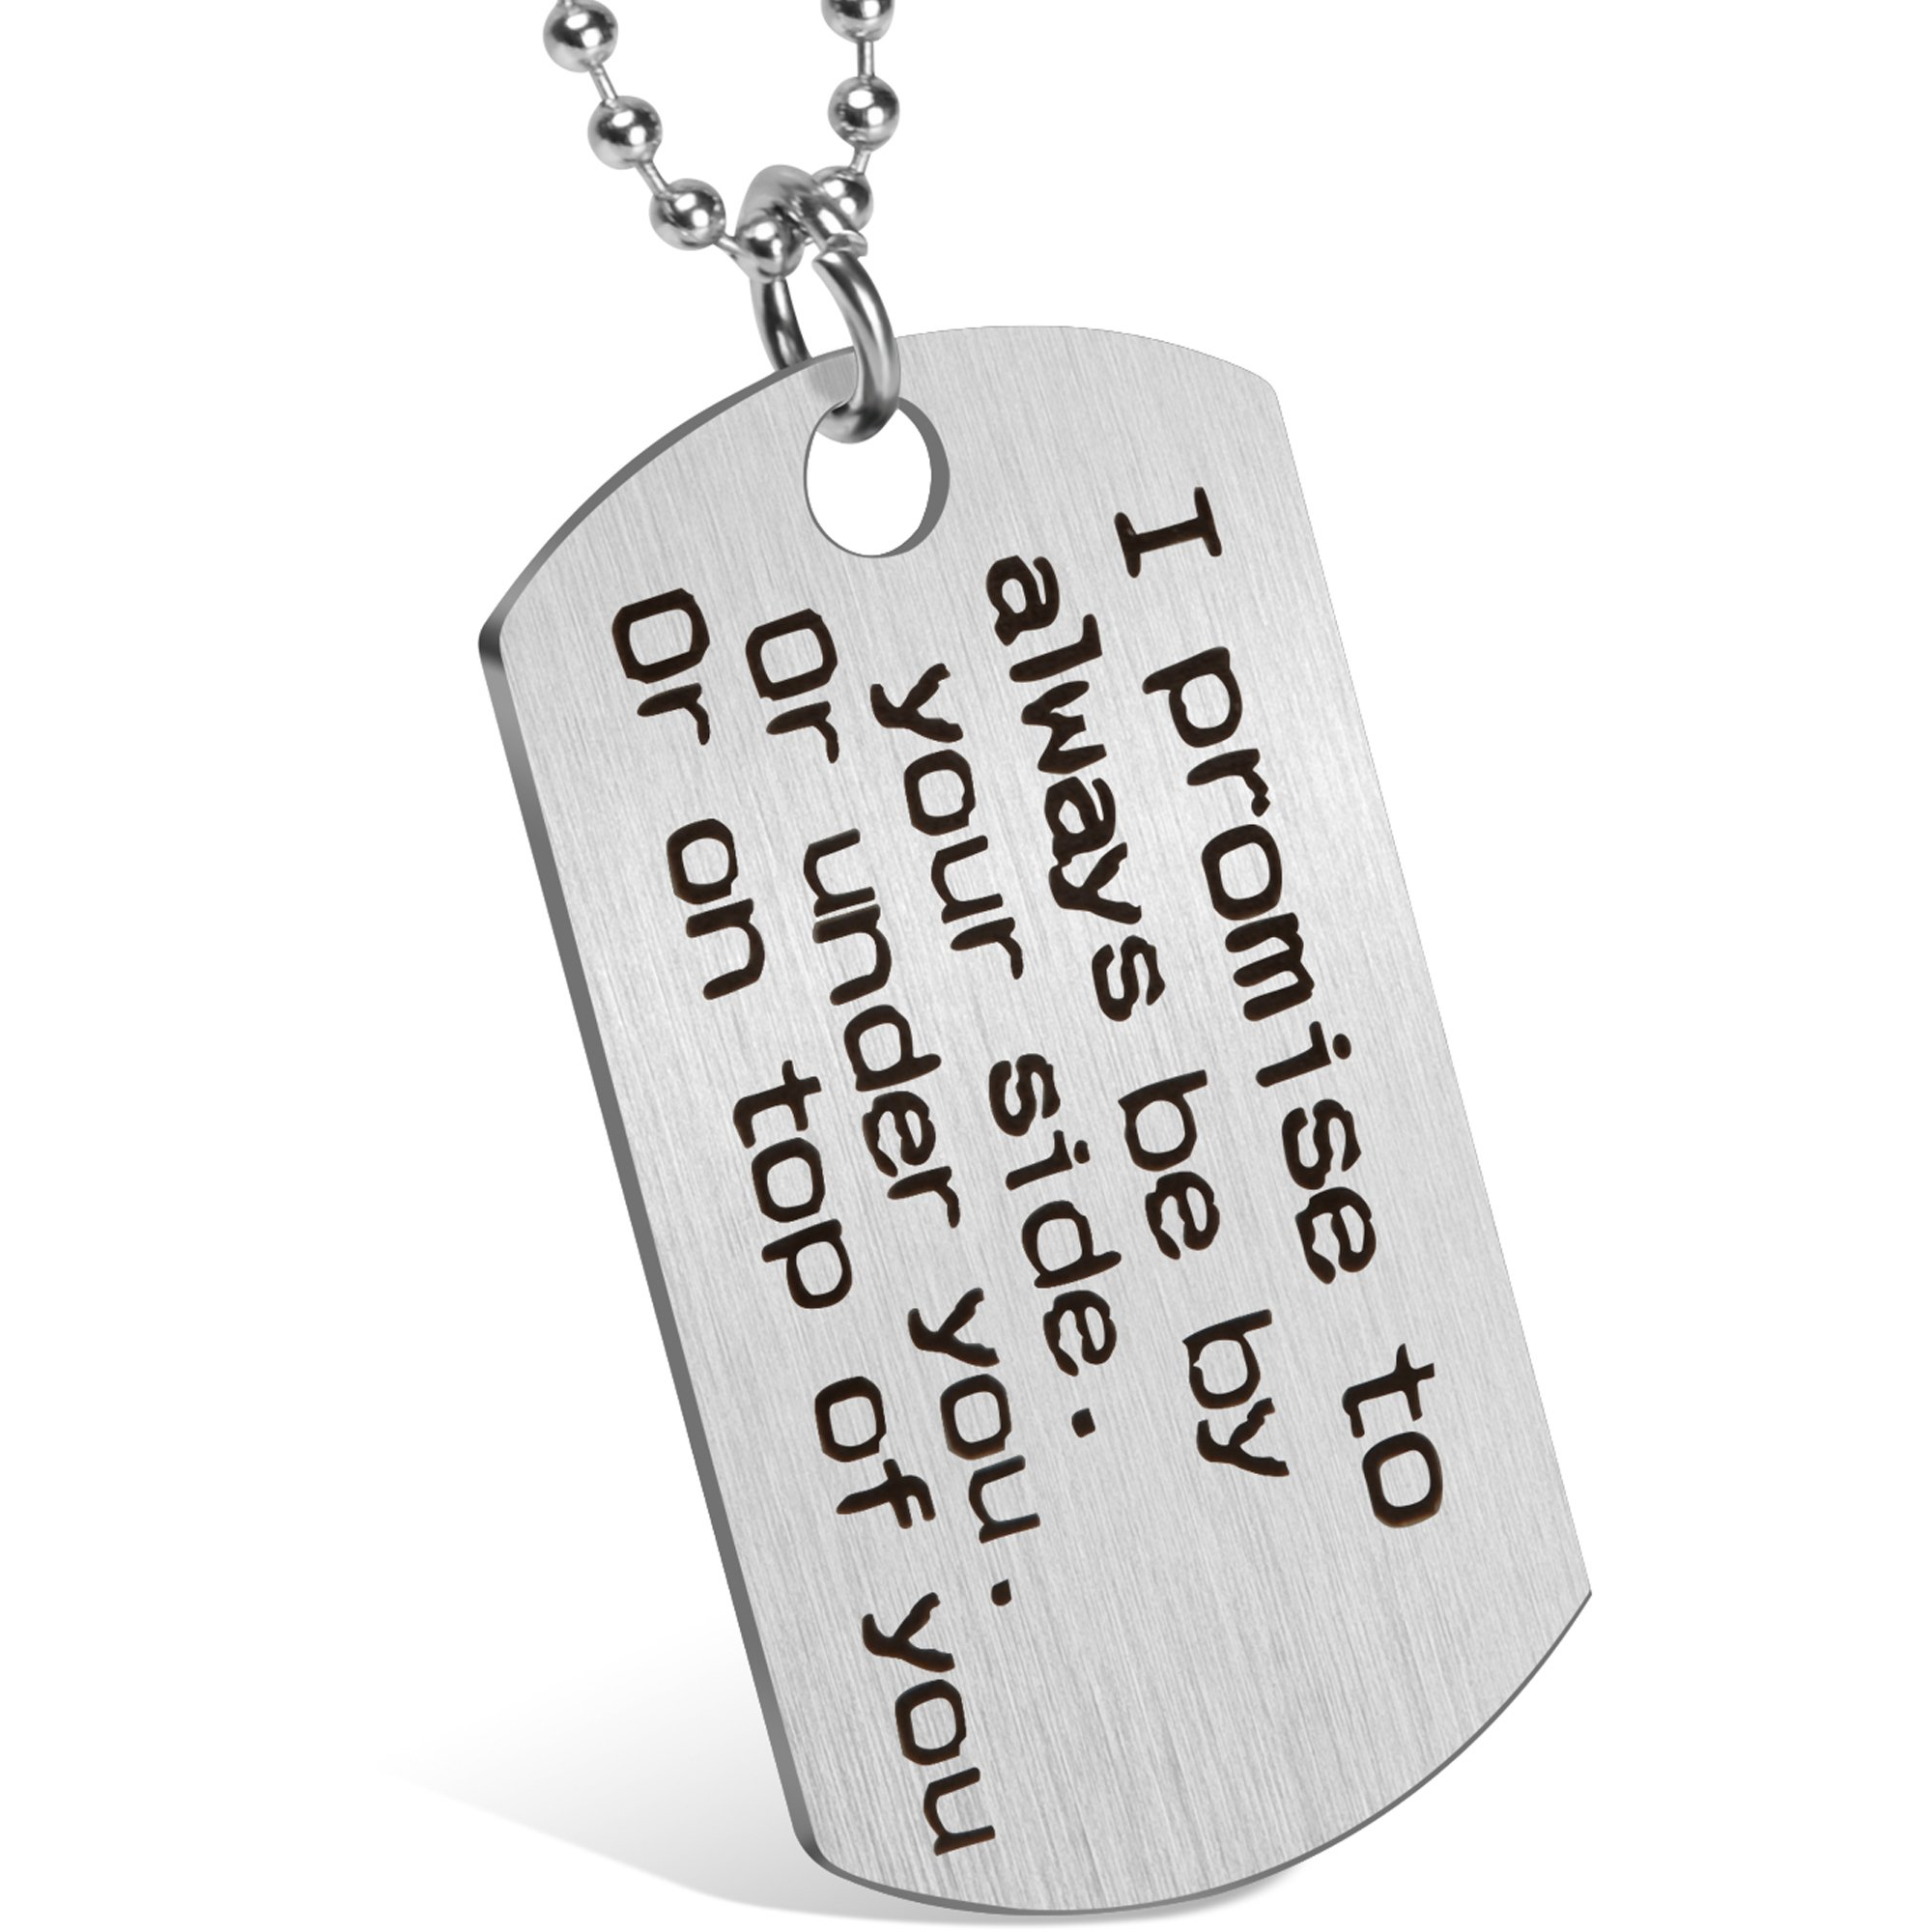 Valentine's Day Gift for Girlfriend Boyfriend Wife Husband Naughty Words Dog Tag Necklace Personalized Keychain Couples Jewelry Gift for Wedding Anniversary Birthday (♥I promise)